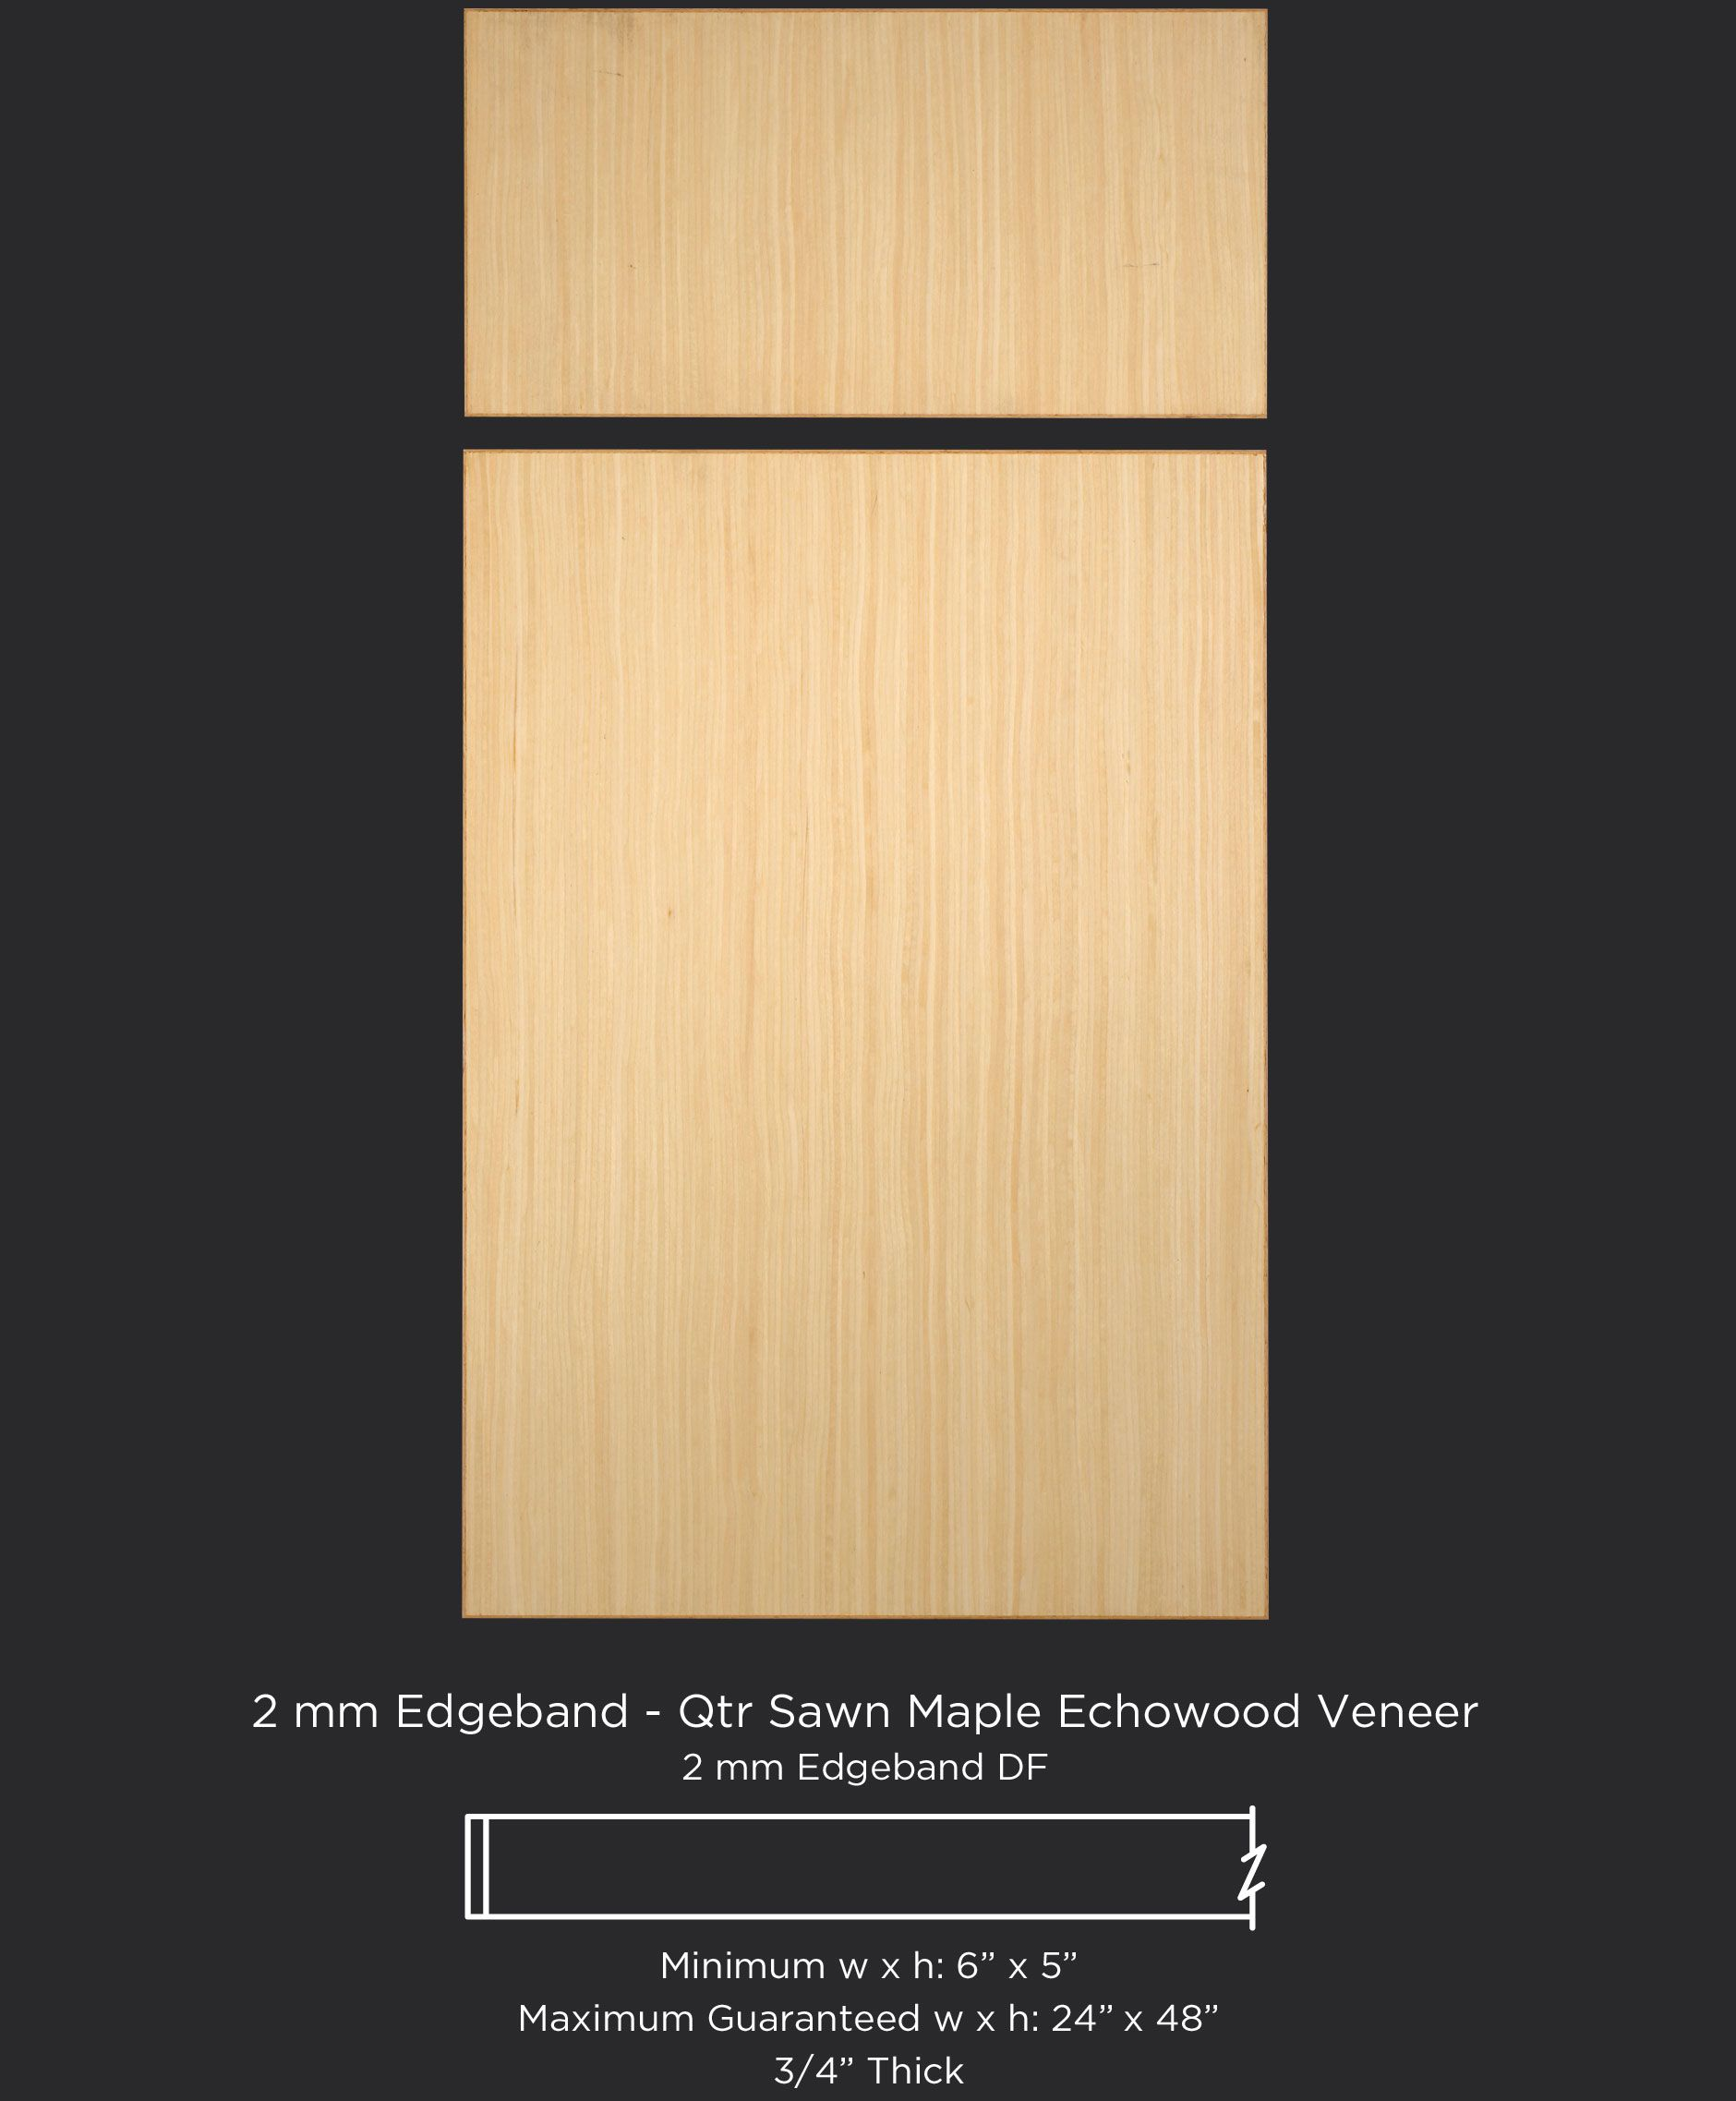 Light Colored Contemporary Cabinet Door In Quarter Sawn Maple Echowood Veneer By Taylorcraft Company